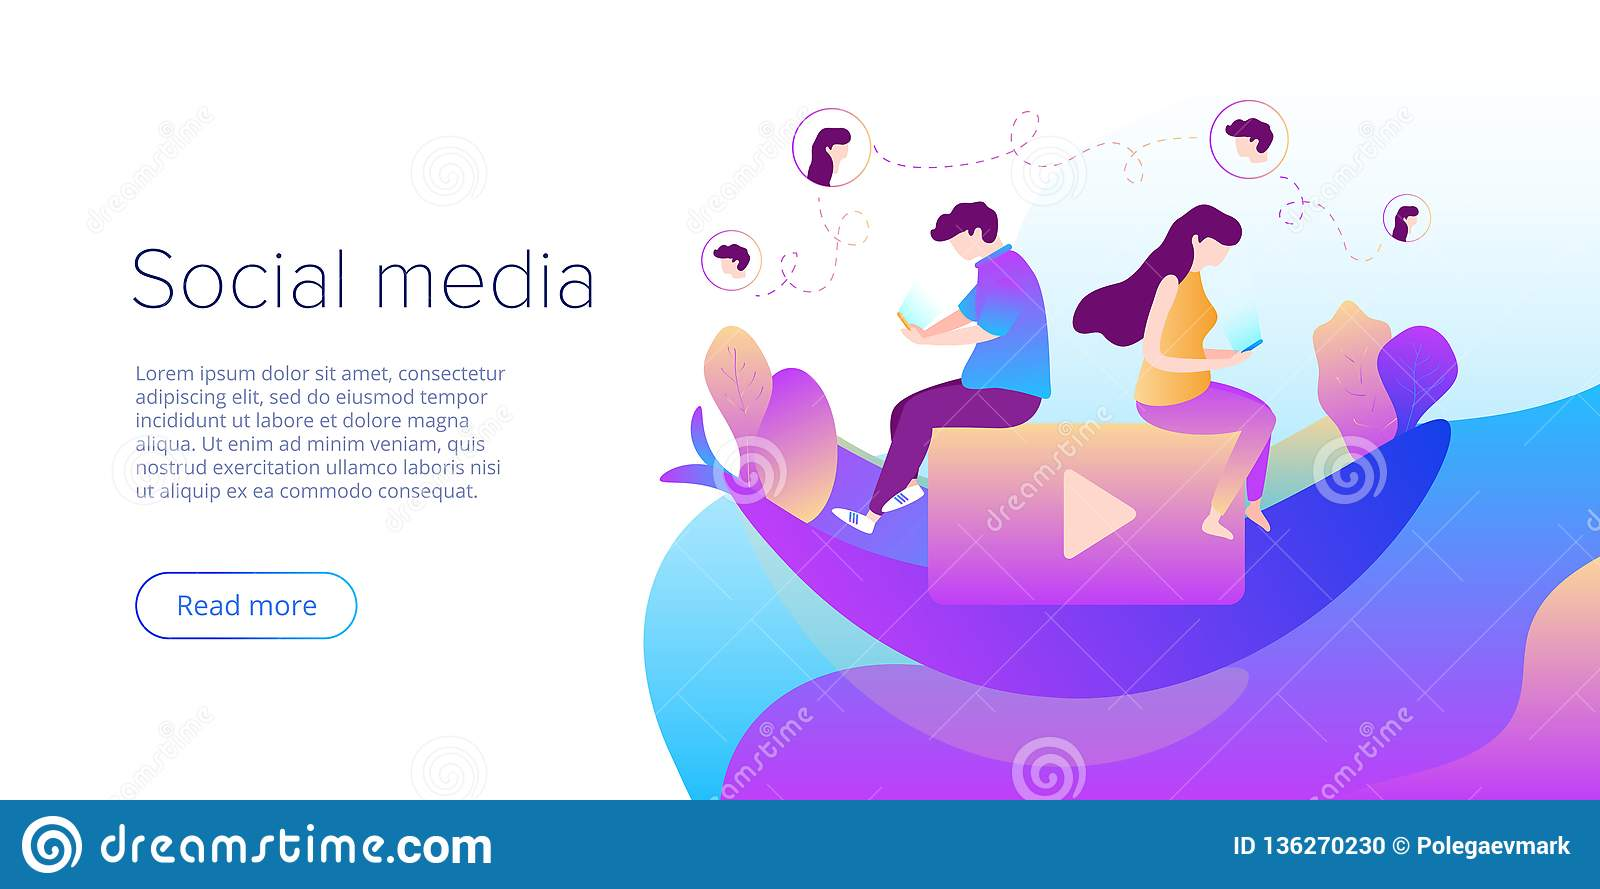 Social media chat concept in vector illustration. Teens using smartphones for virtual conversation, sharing or writing comments.